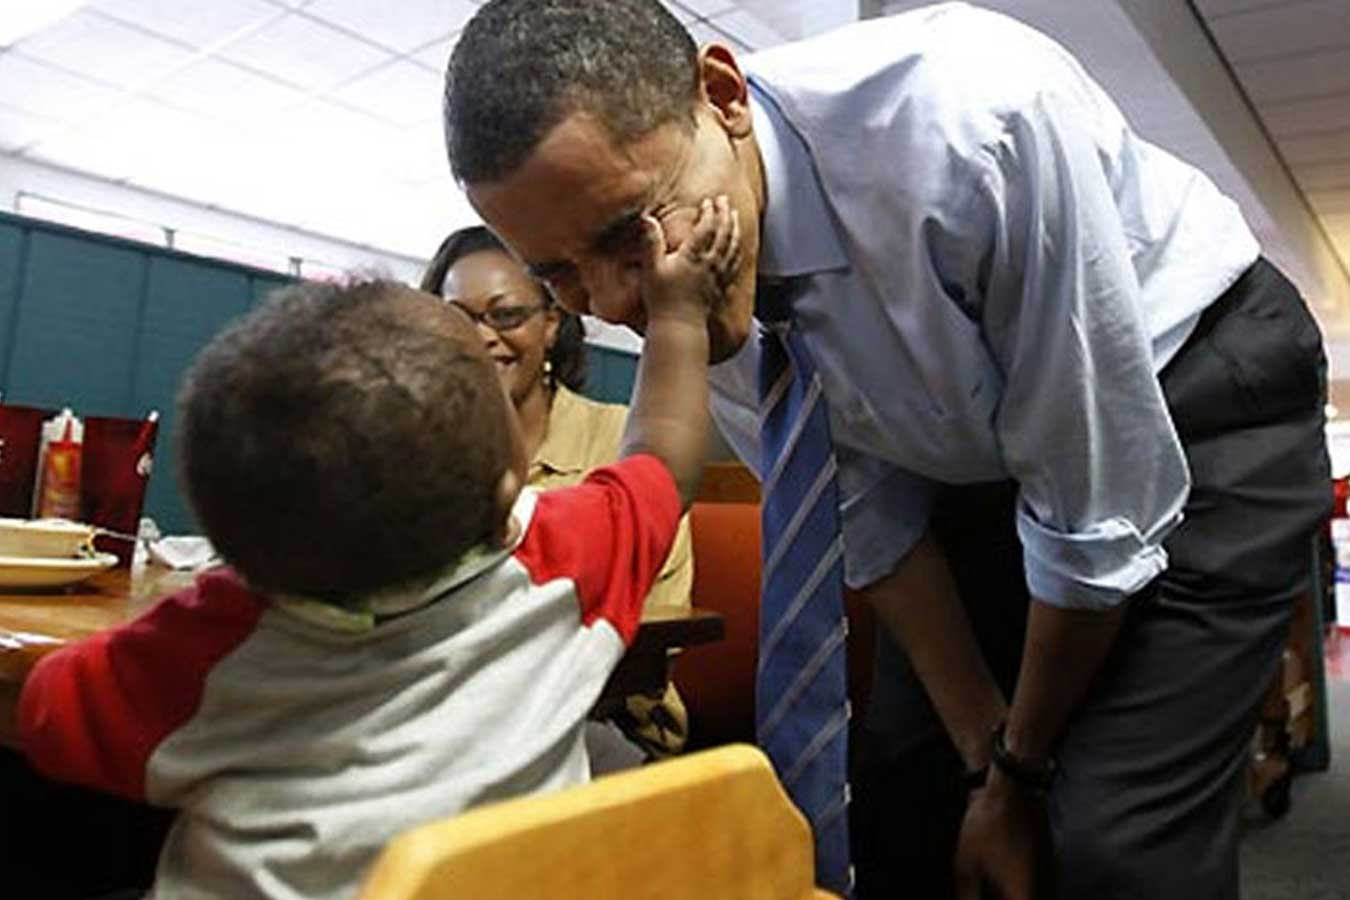 Barack Obama palying with a smal child